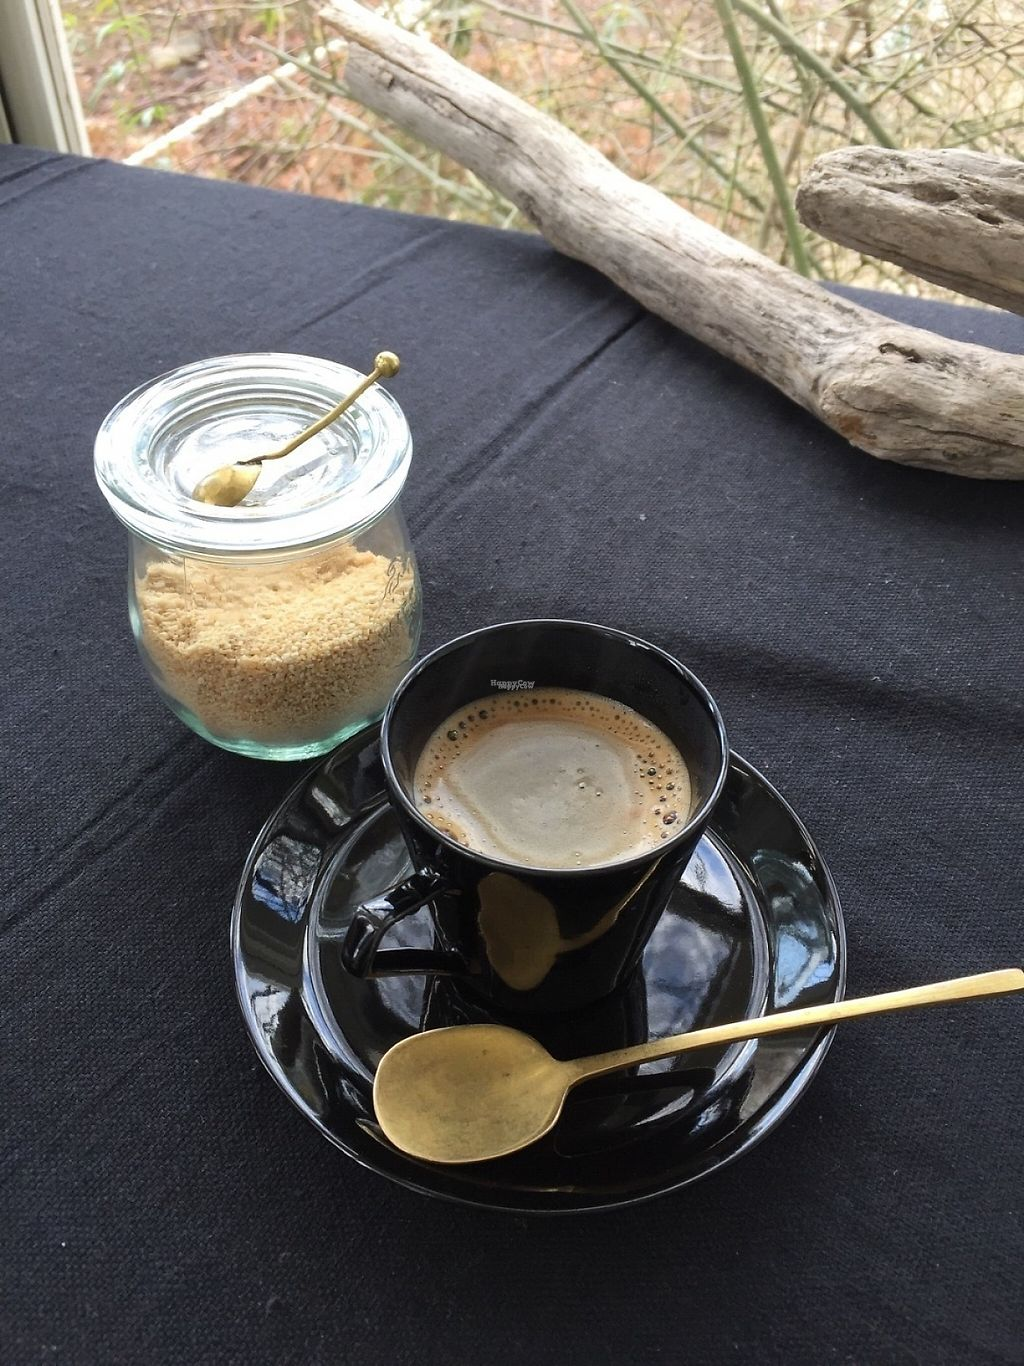 "Photo of Bonheur  by <a href=""/members/profile/Radhi87"">Radhi87</a> <br/>Grain coffe with daikon sugar <br/> March 11, 2017  - <a href='/contact/abuse/image/88460/235284'>Report</a>"